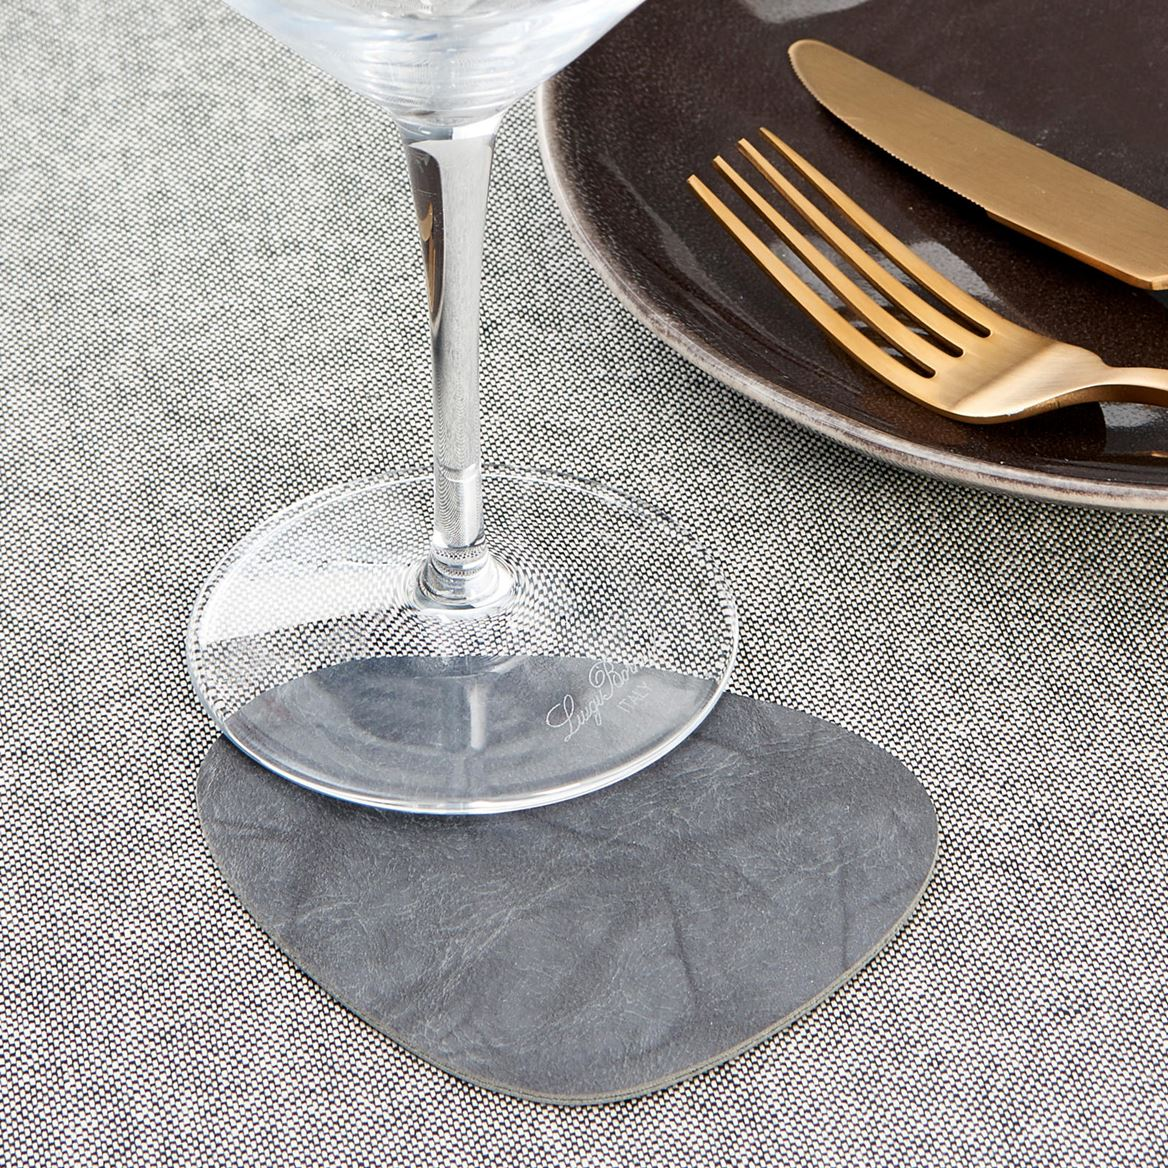 ELLIPS Dessous-de-verre set de 4 gris Larg. 10 x Long. 9 cm_ellips-dessous-de-verre-set-de-4-gris-larg--10-x-long--9-cm